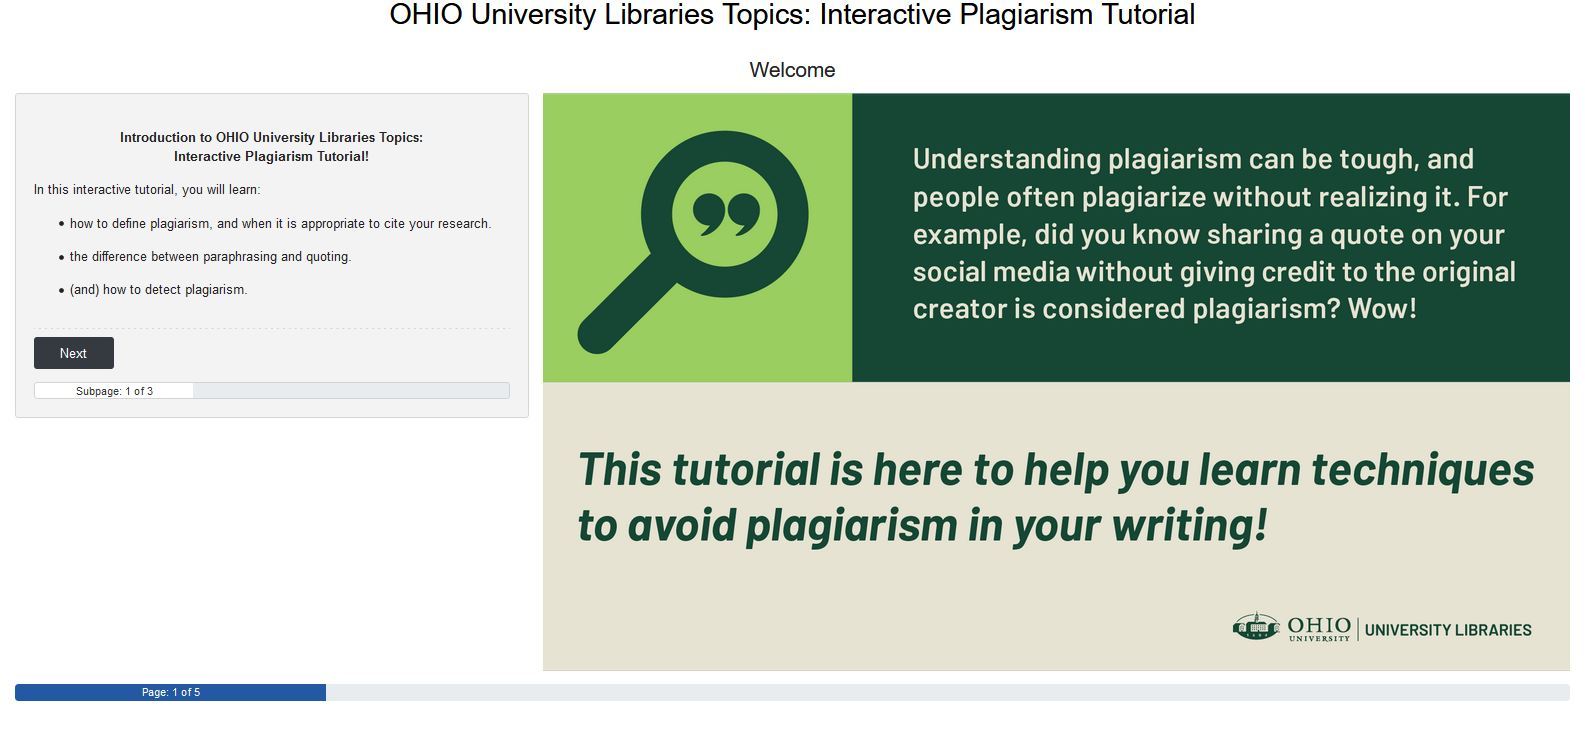 First slide of the interactive plagiaism tutorial. Please click to enter tutorial